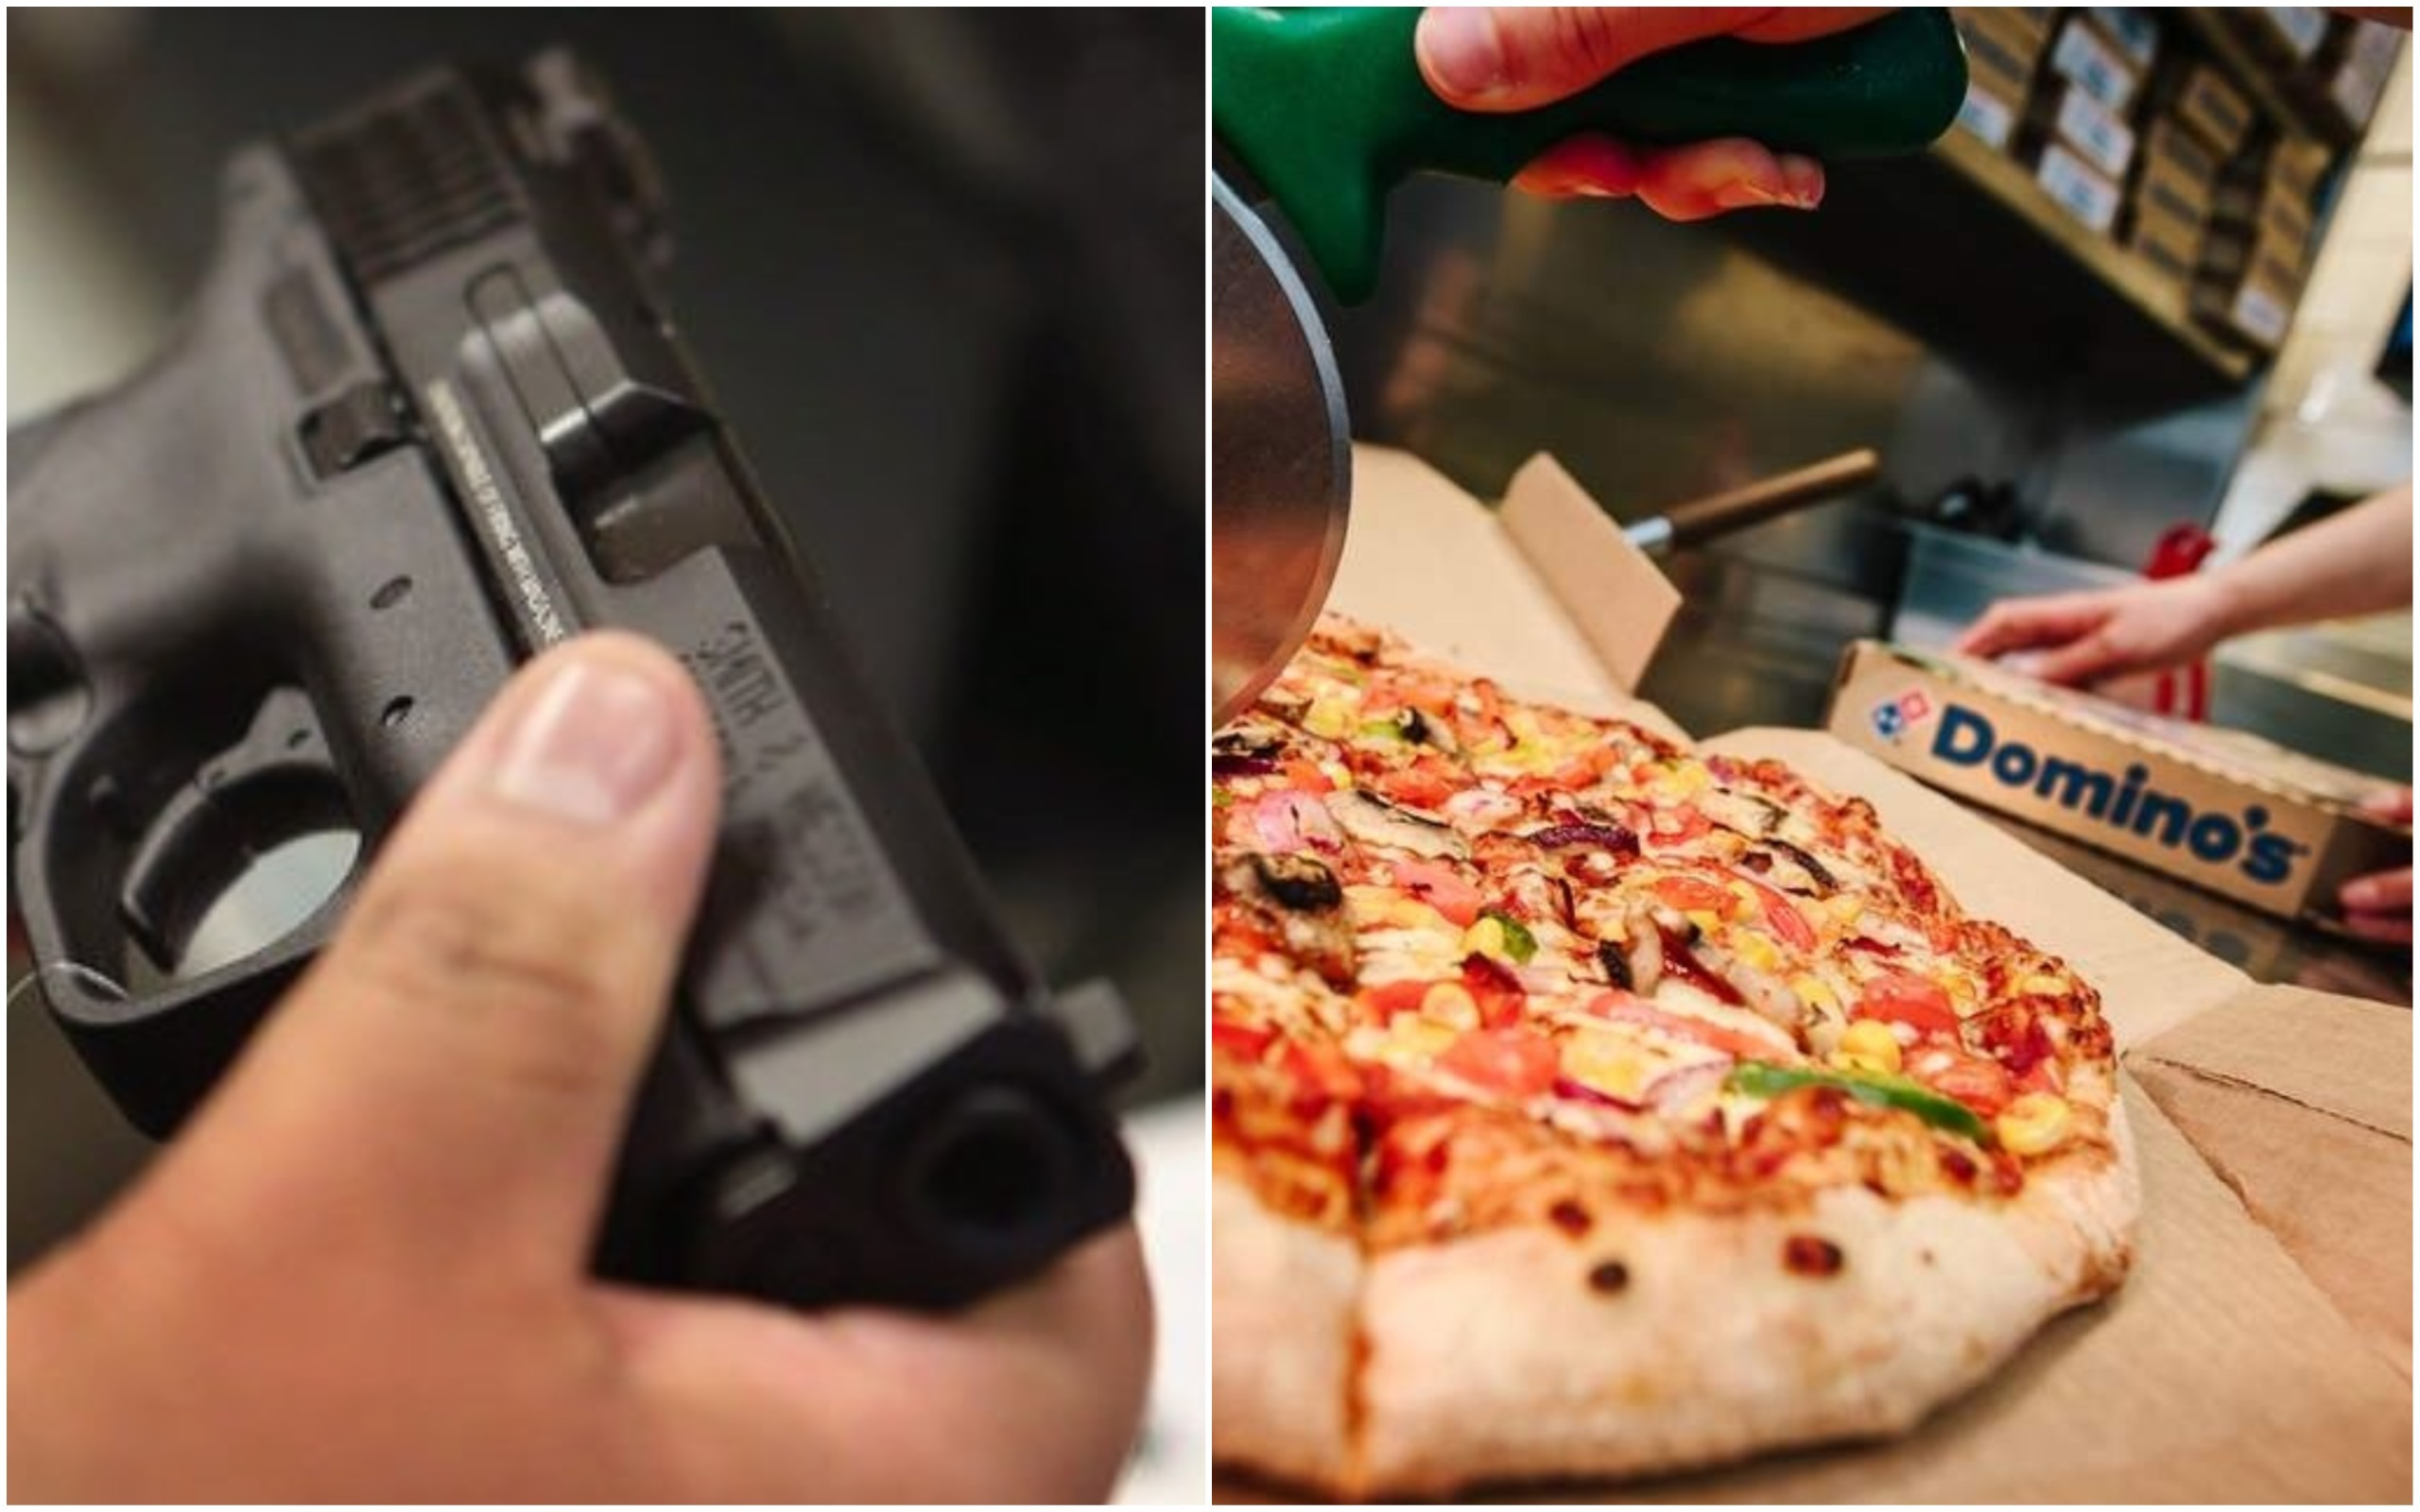 Law, Student, Dominos, Shoot, Delivery, Cold, Pizza, NewsMobile, Mobile, News, India